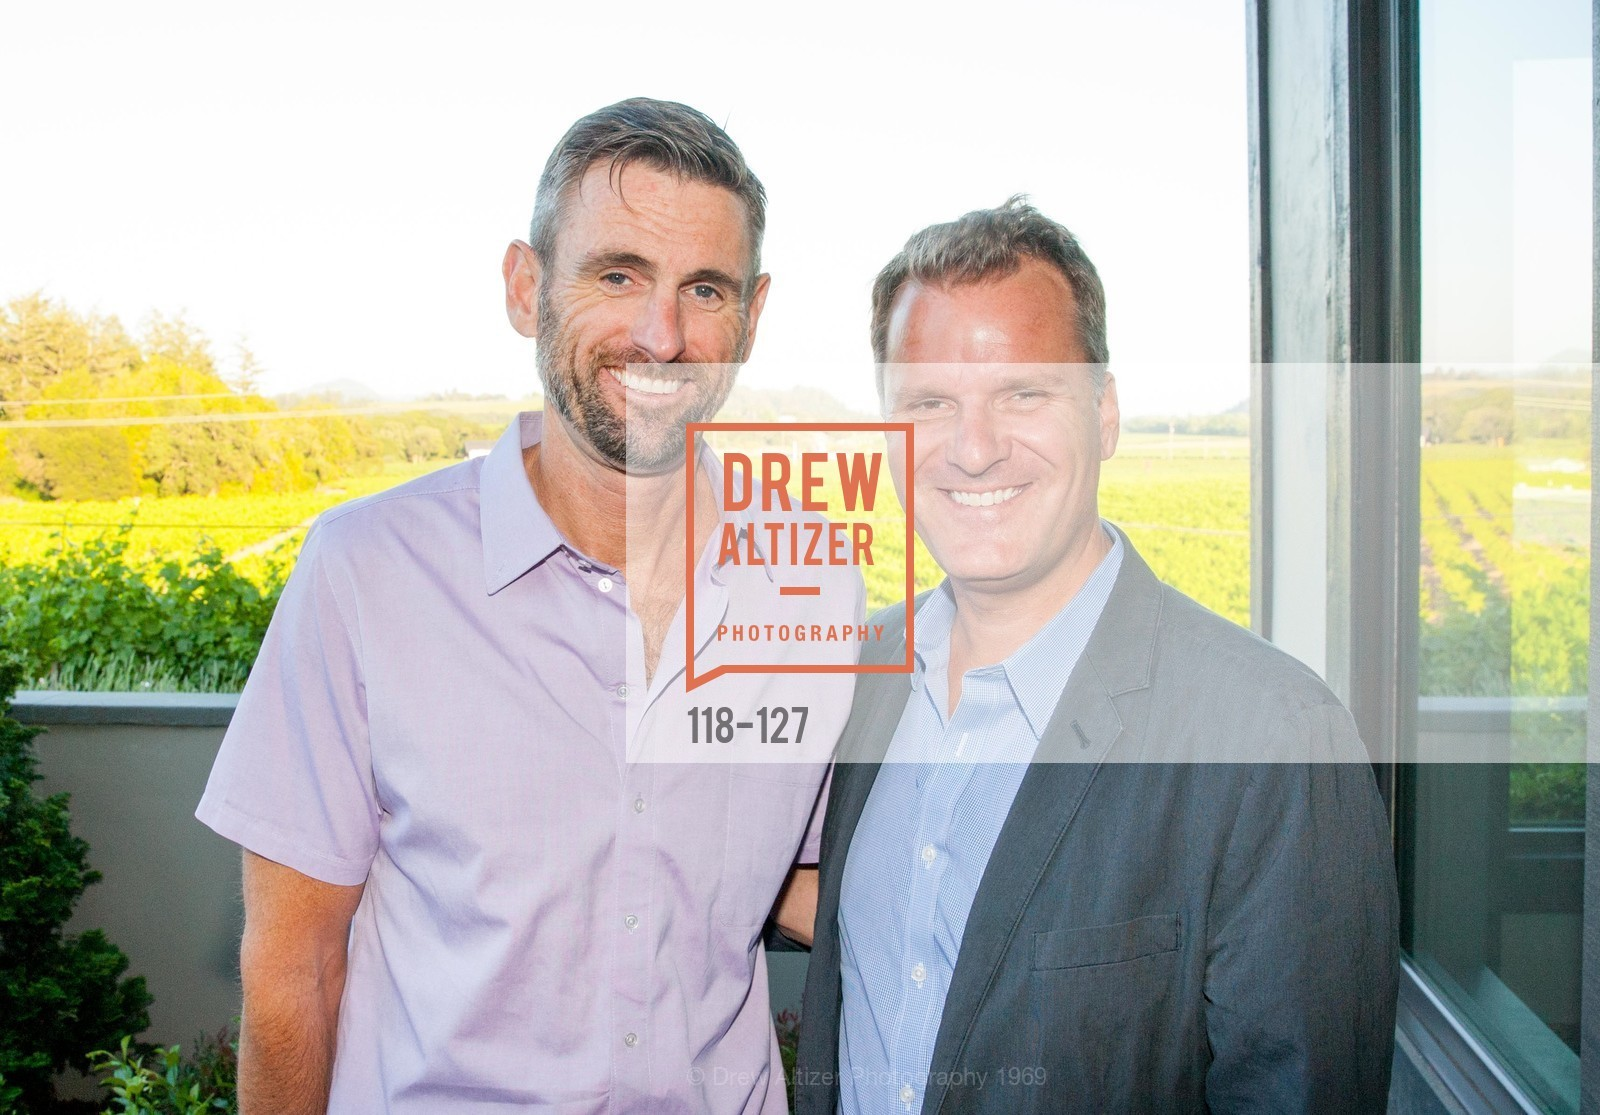 Matt Gray, David Groff, An Evening in the Vineyard hosted by JACK CALHOUN & TRENT NORRIS, Jack Calhoun & Trent Norris Vineyard. 3393 Dry Creek Road, Healdsburg CA 95448, May 22nd, 2015,Drew Altizer, Drew Altizer Photography, full-service agency, private events, San Francisco photographer, photographer california